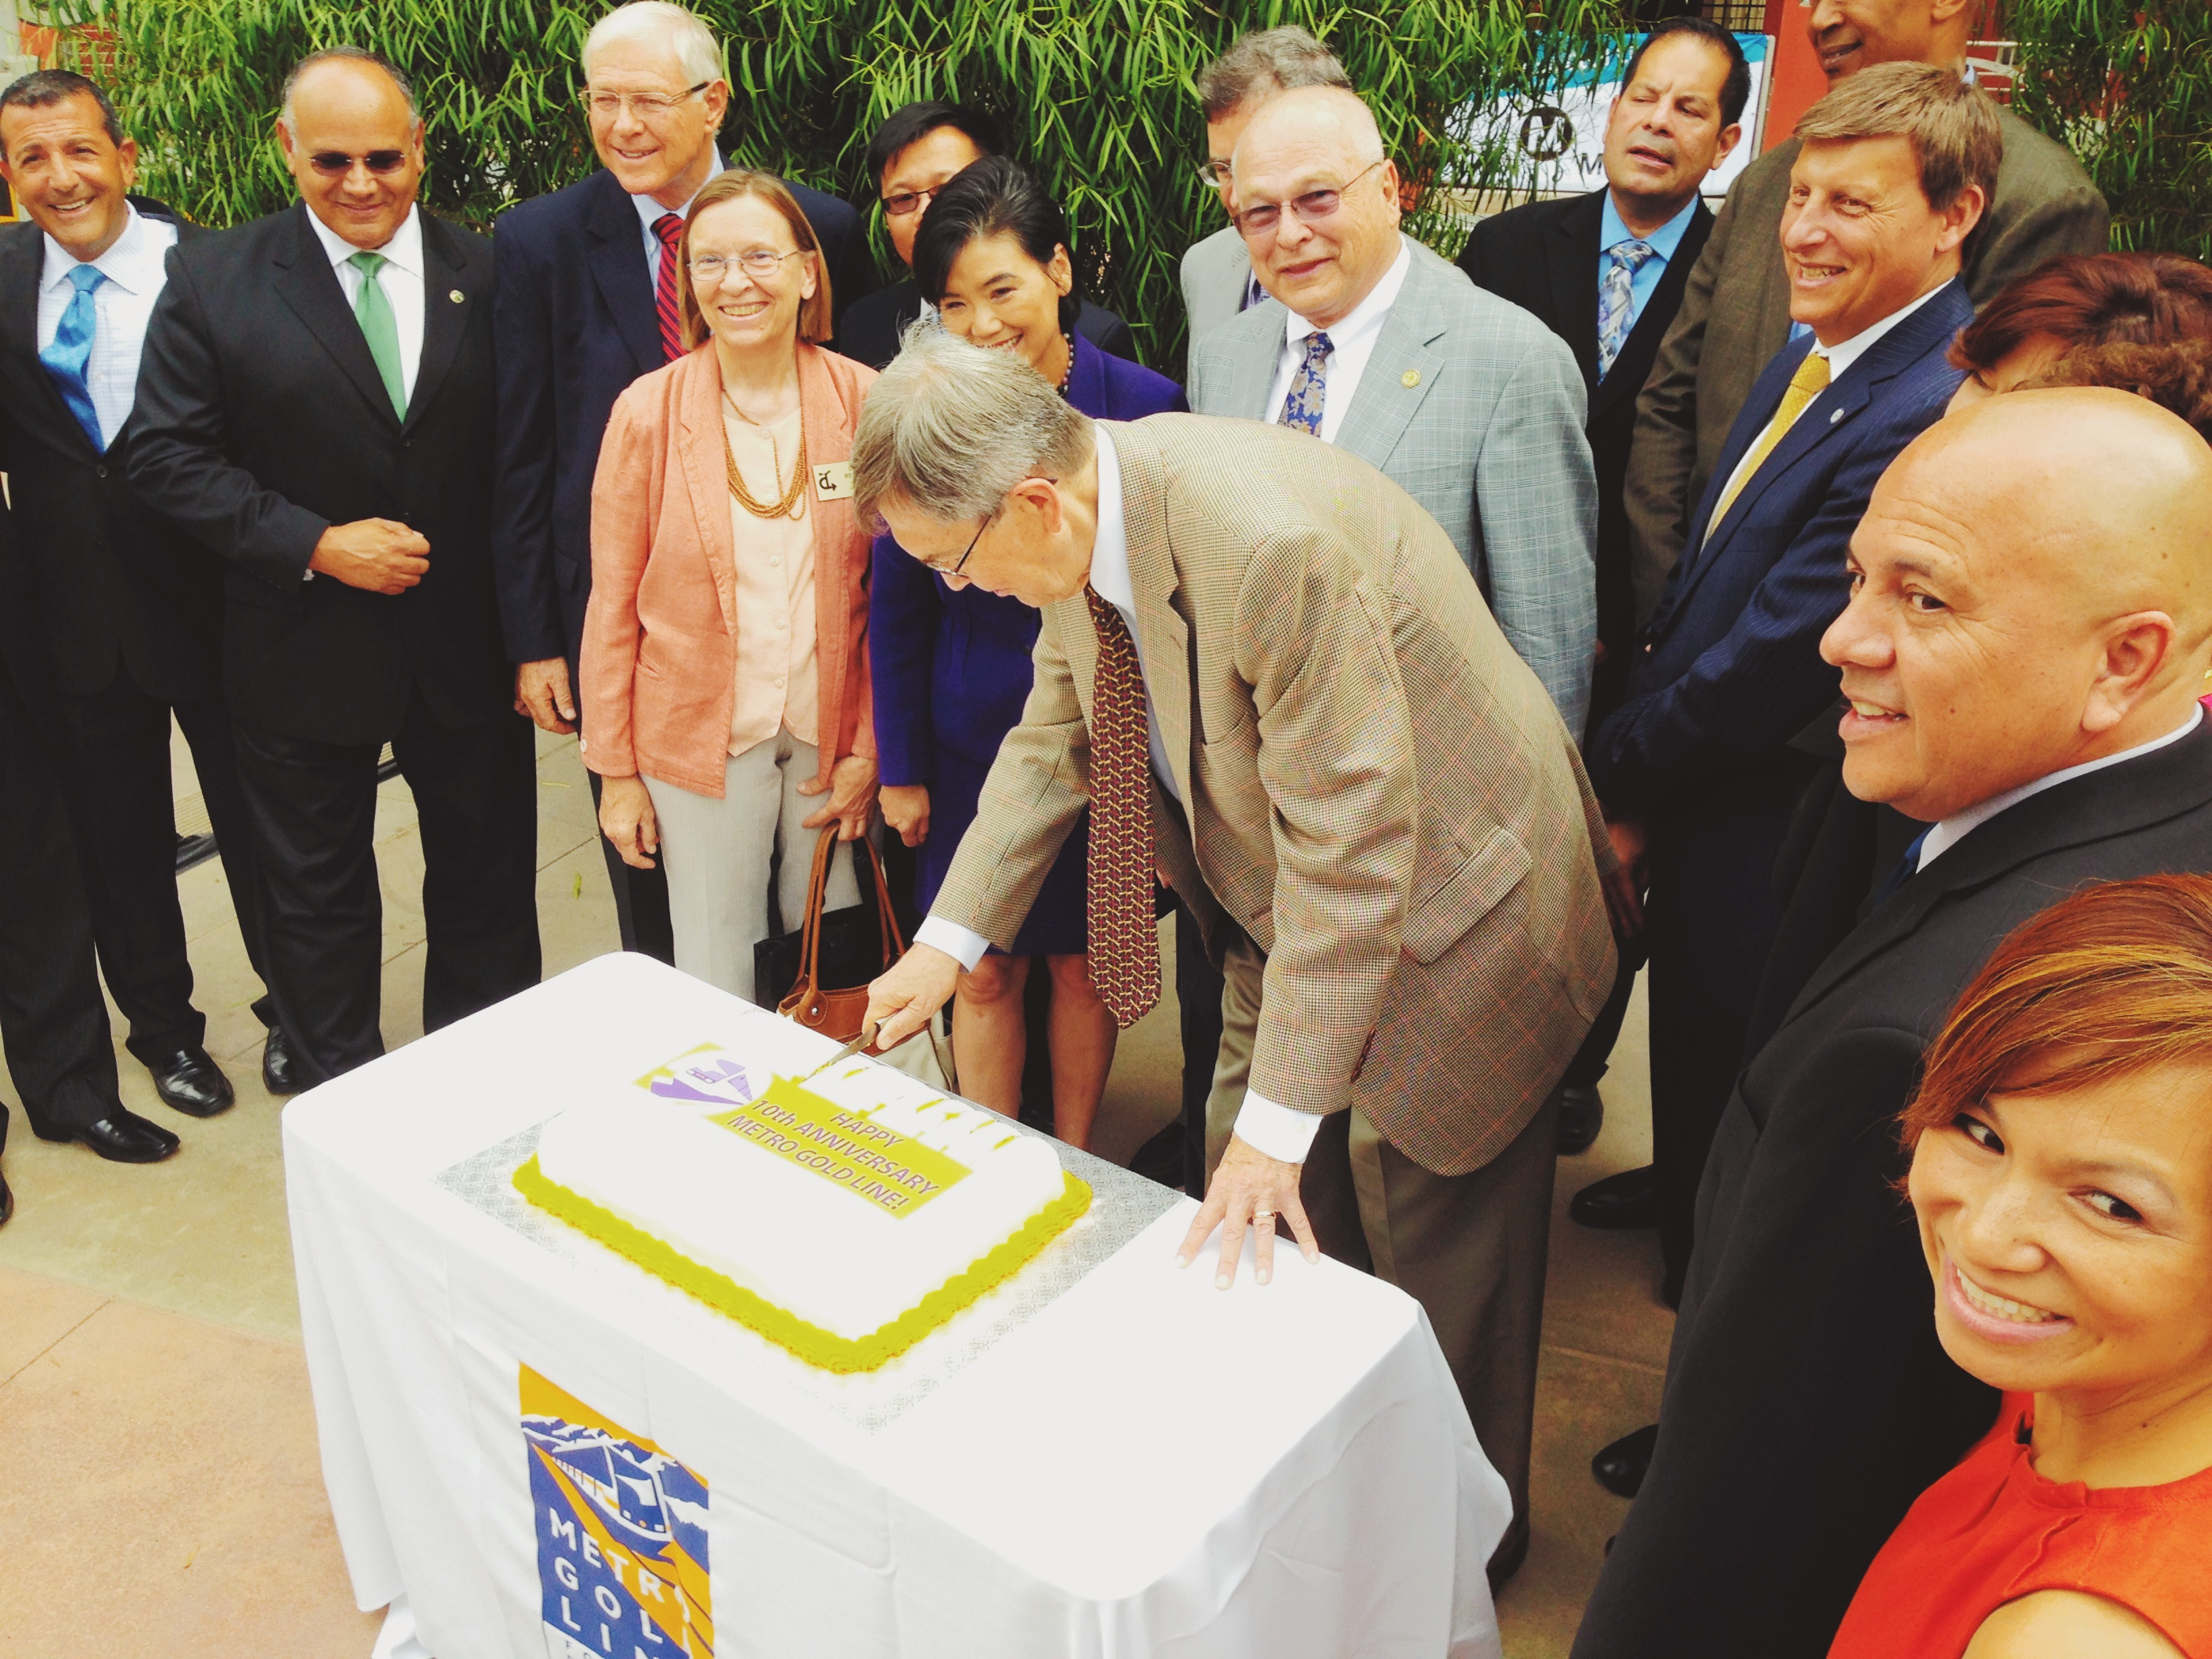 Officials cut the cake on the Gold Line's first decade. Photo by Steve Hymon/Metro.